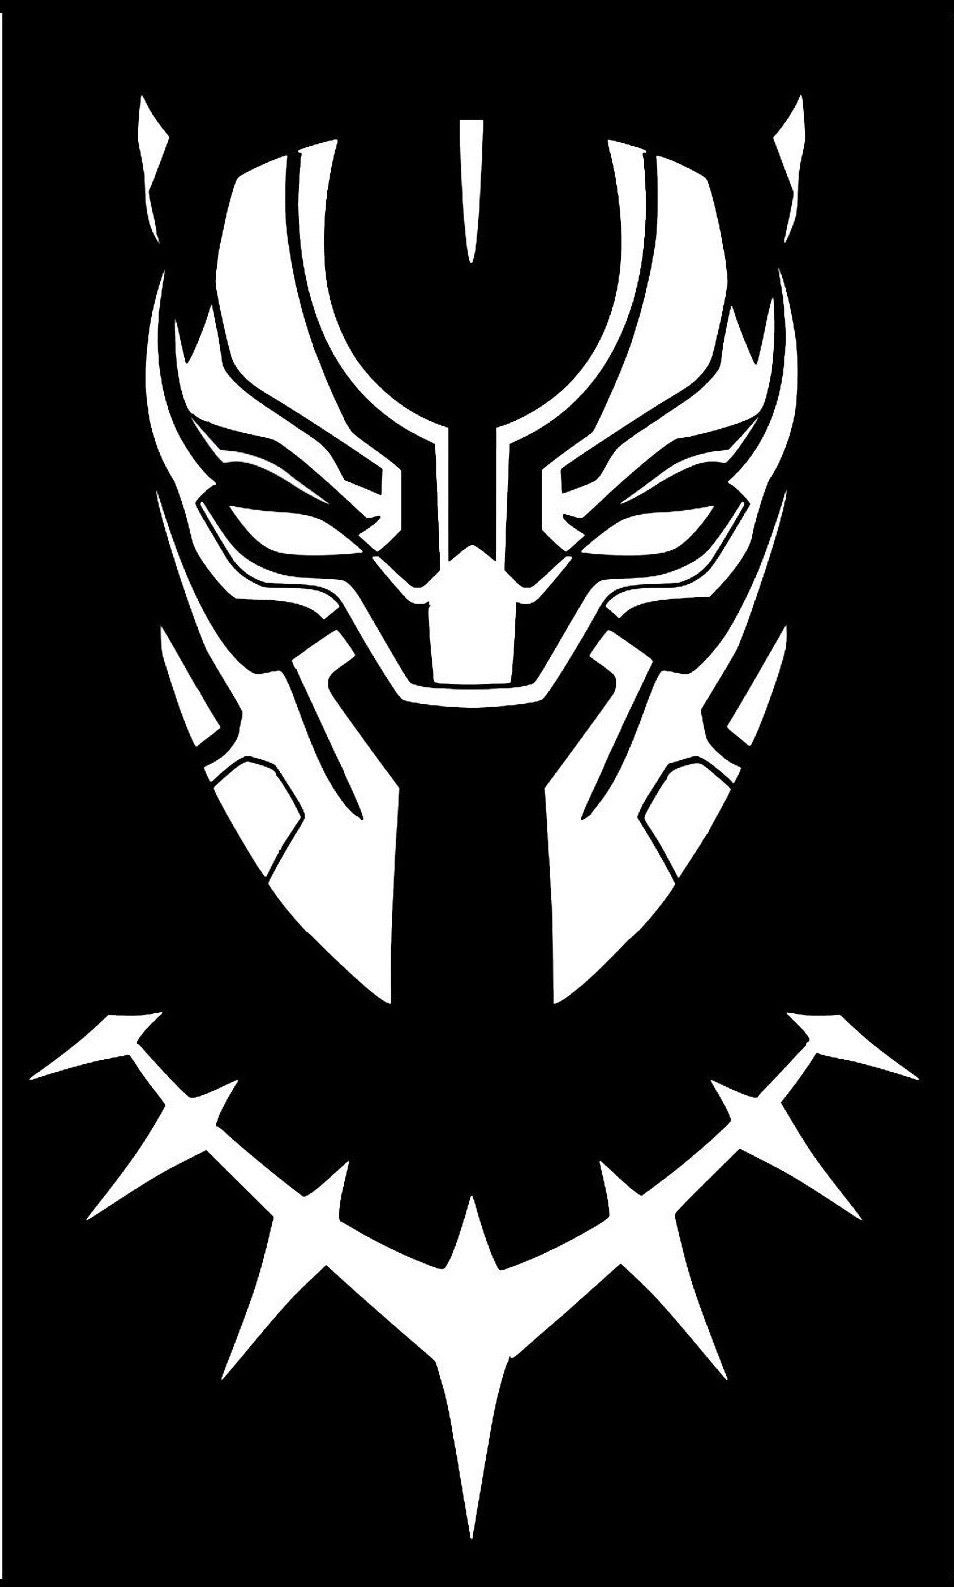 Marvels black panther decal for car laptop and more pick size and color in home